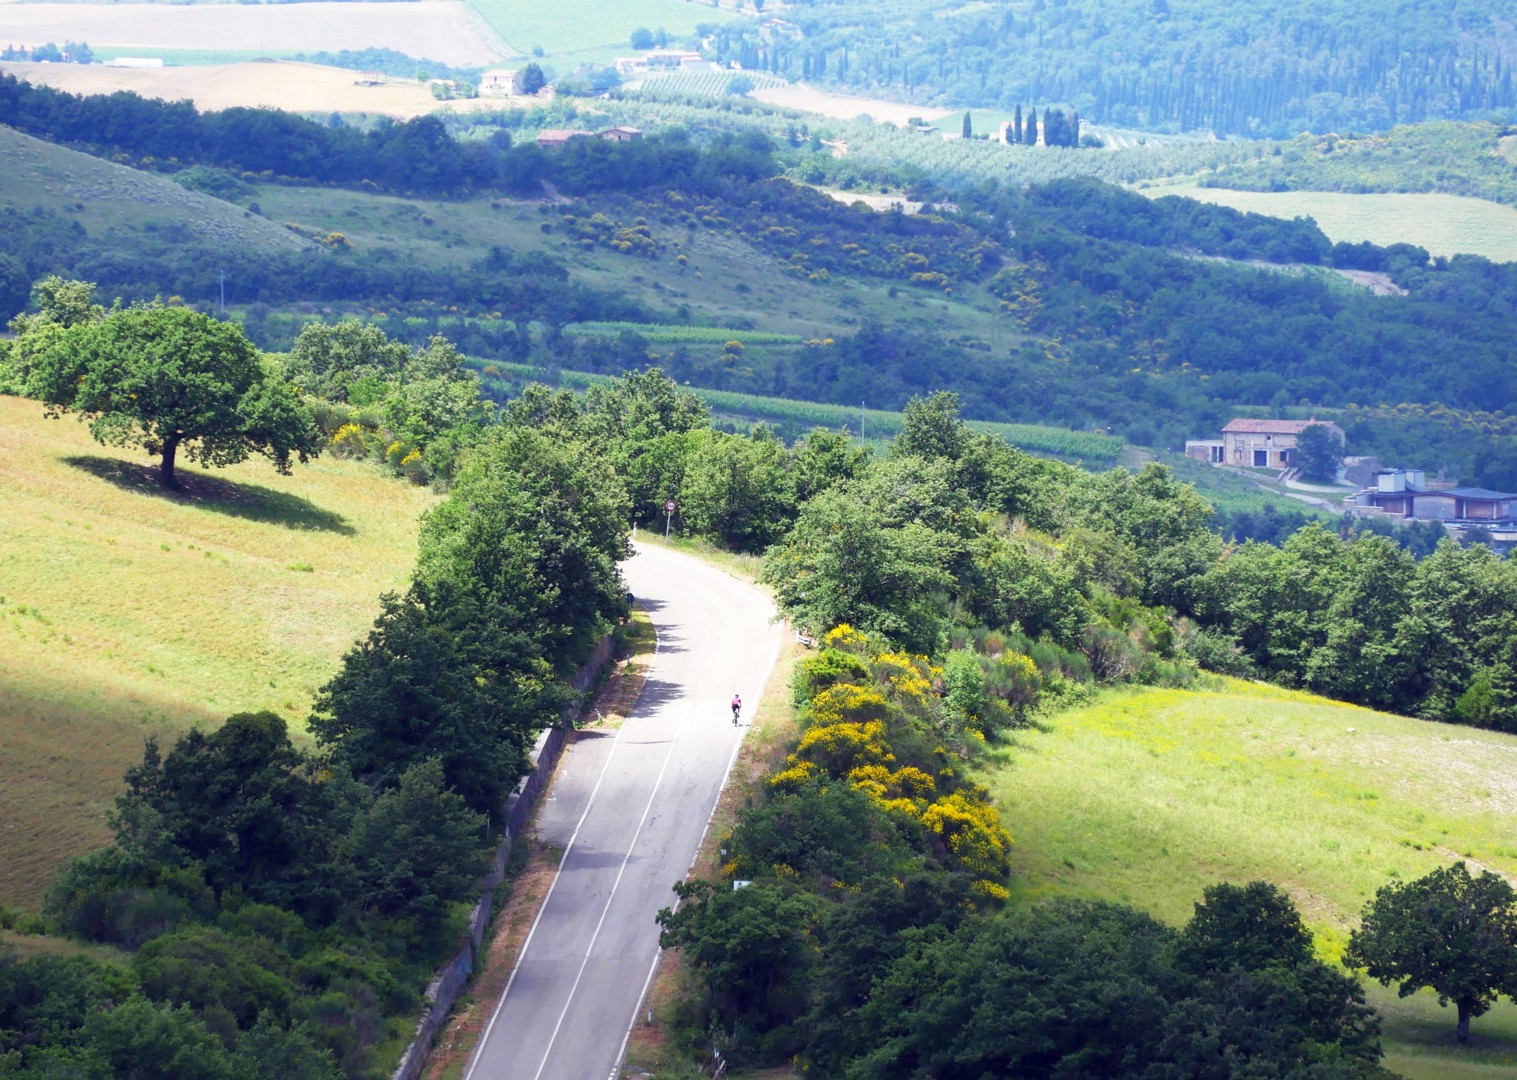 solo-road-cycling-self-guided-italy.jpg - Italy - Tuscany Tourer - Self Guided Road Cycling Holiday - Road Cycling